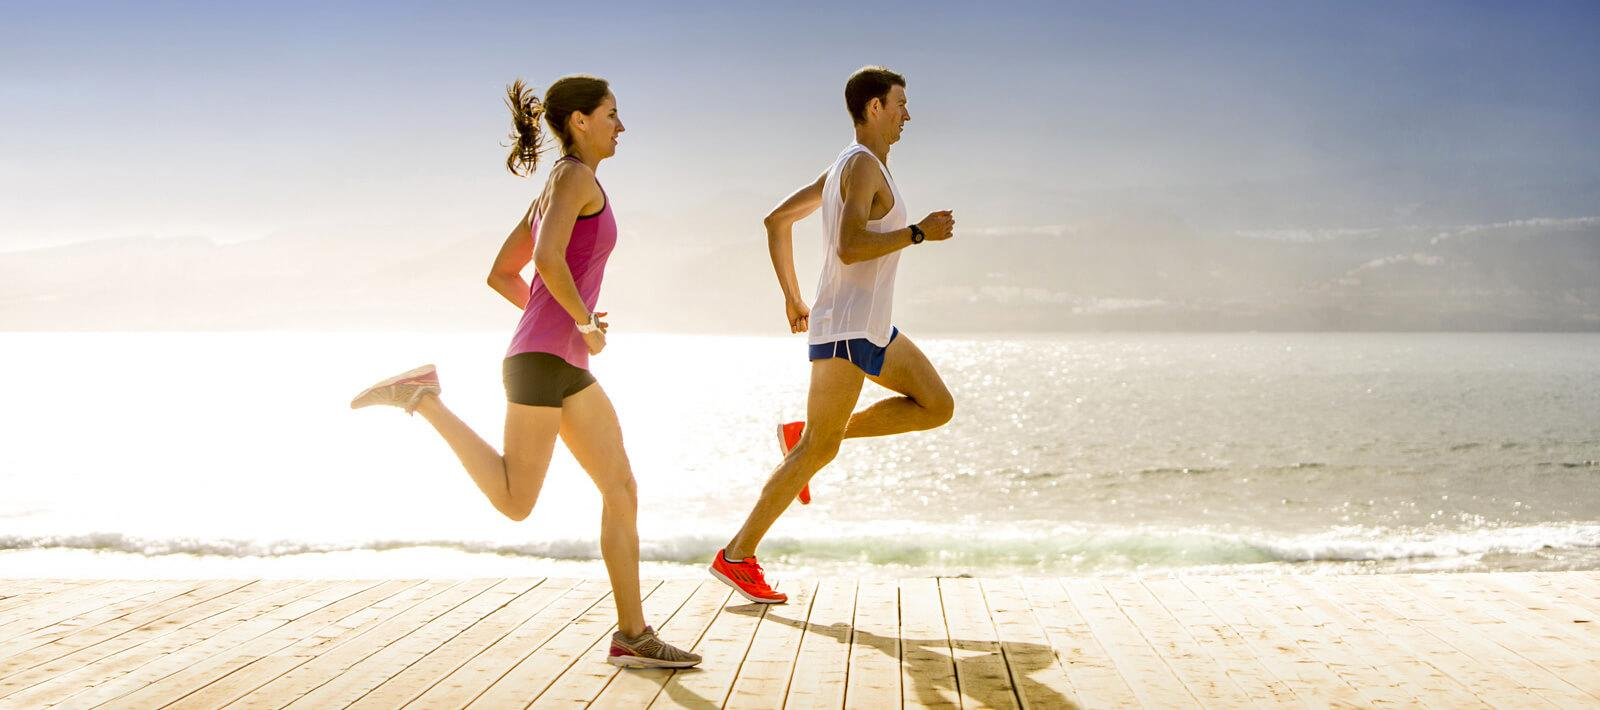 Do You Want to Run a Personal Best? Phase Your Training!